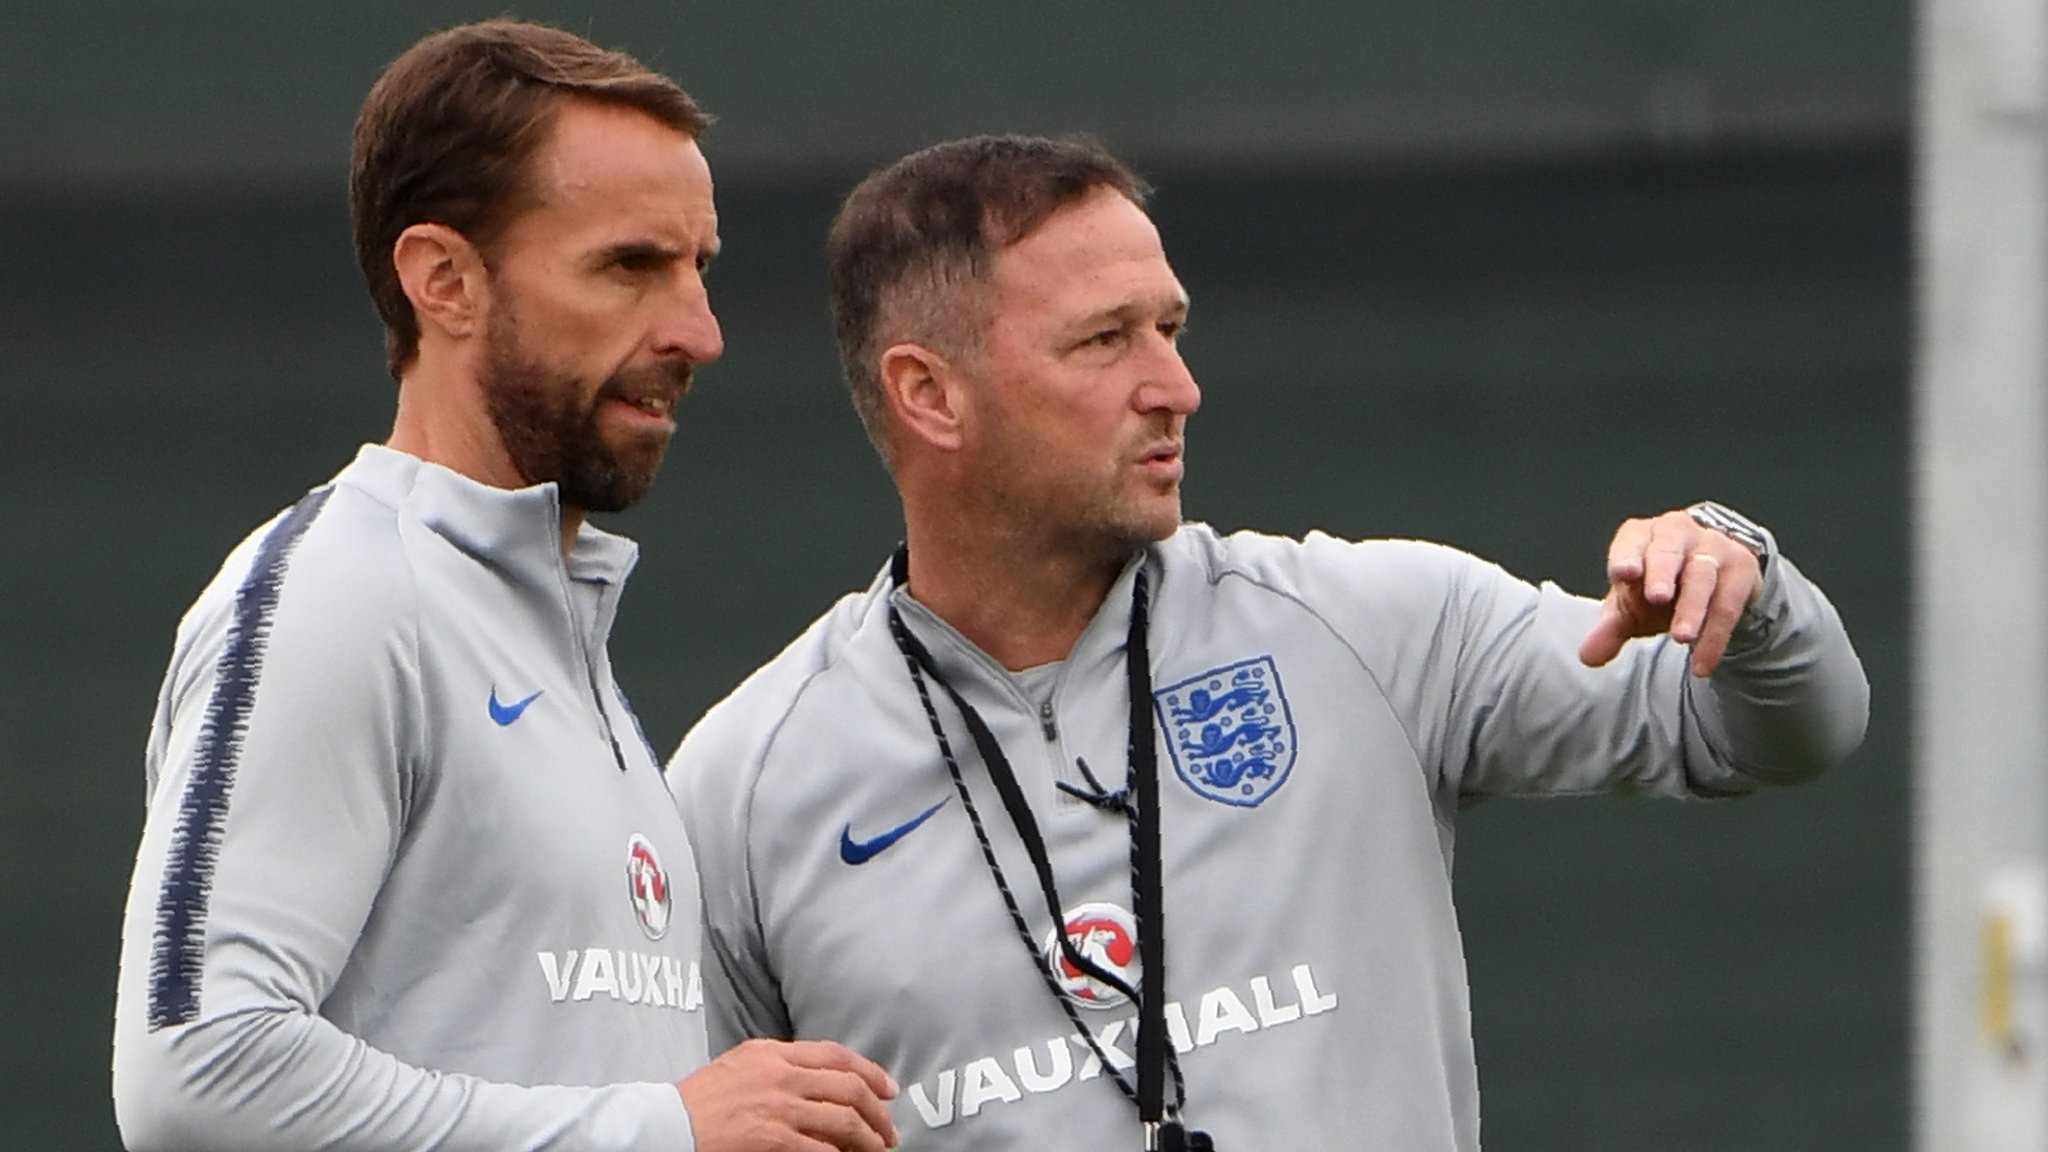 World Cup: England boss Gareth Southgate says media must choose whether to help